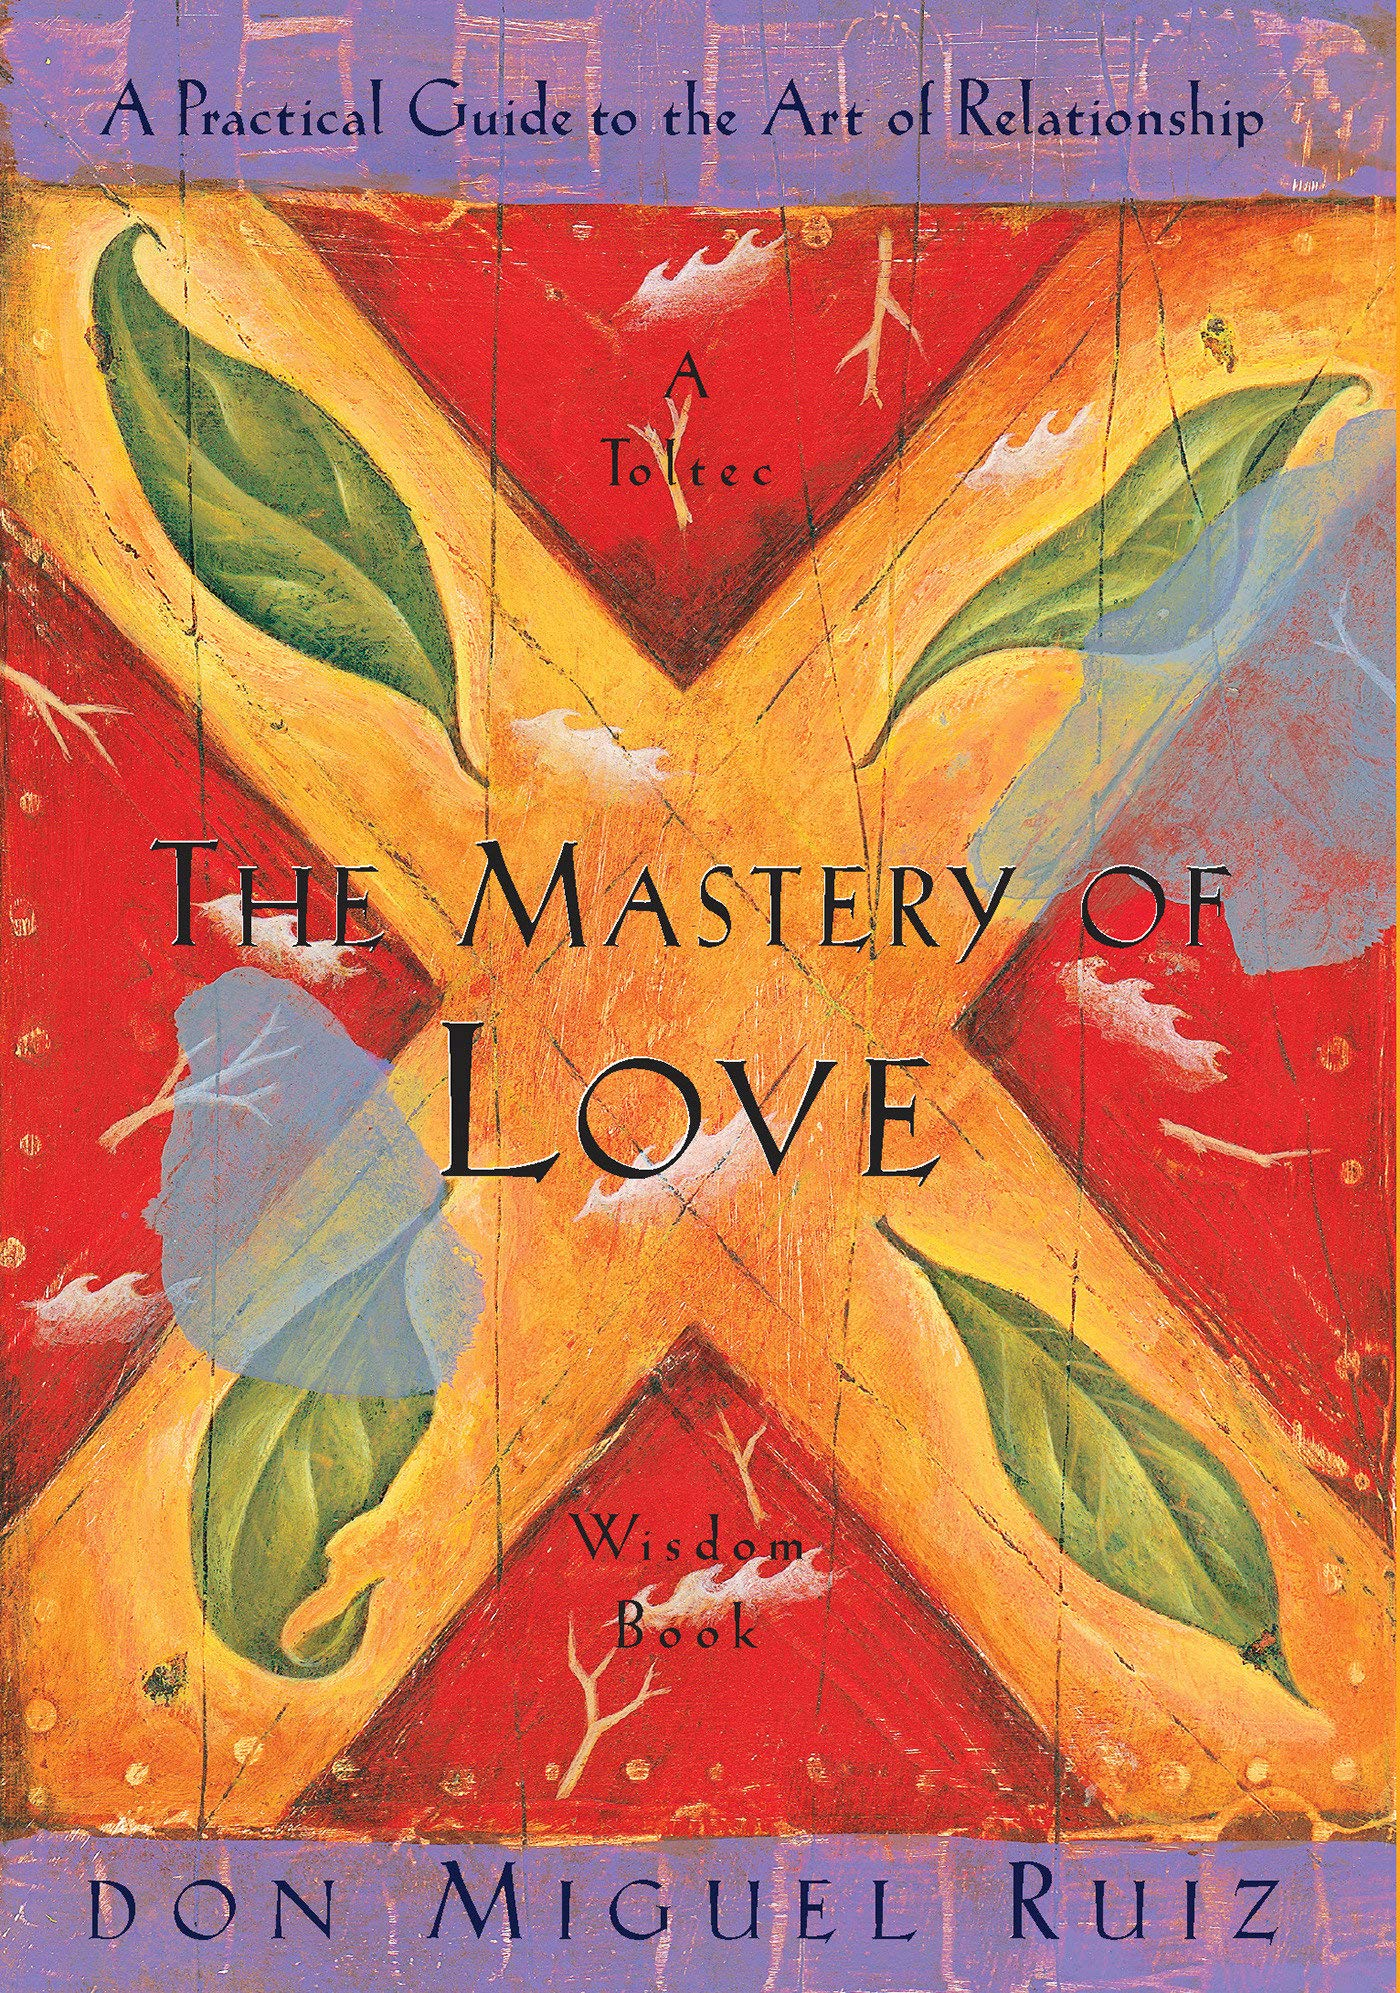 Mastery Of Love: A Practical Guide to the Art of Relationship Toltec Wisdom Book: Amazon.es: Don Miguel Ruiz: Libros en idiomas extranjeros